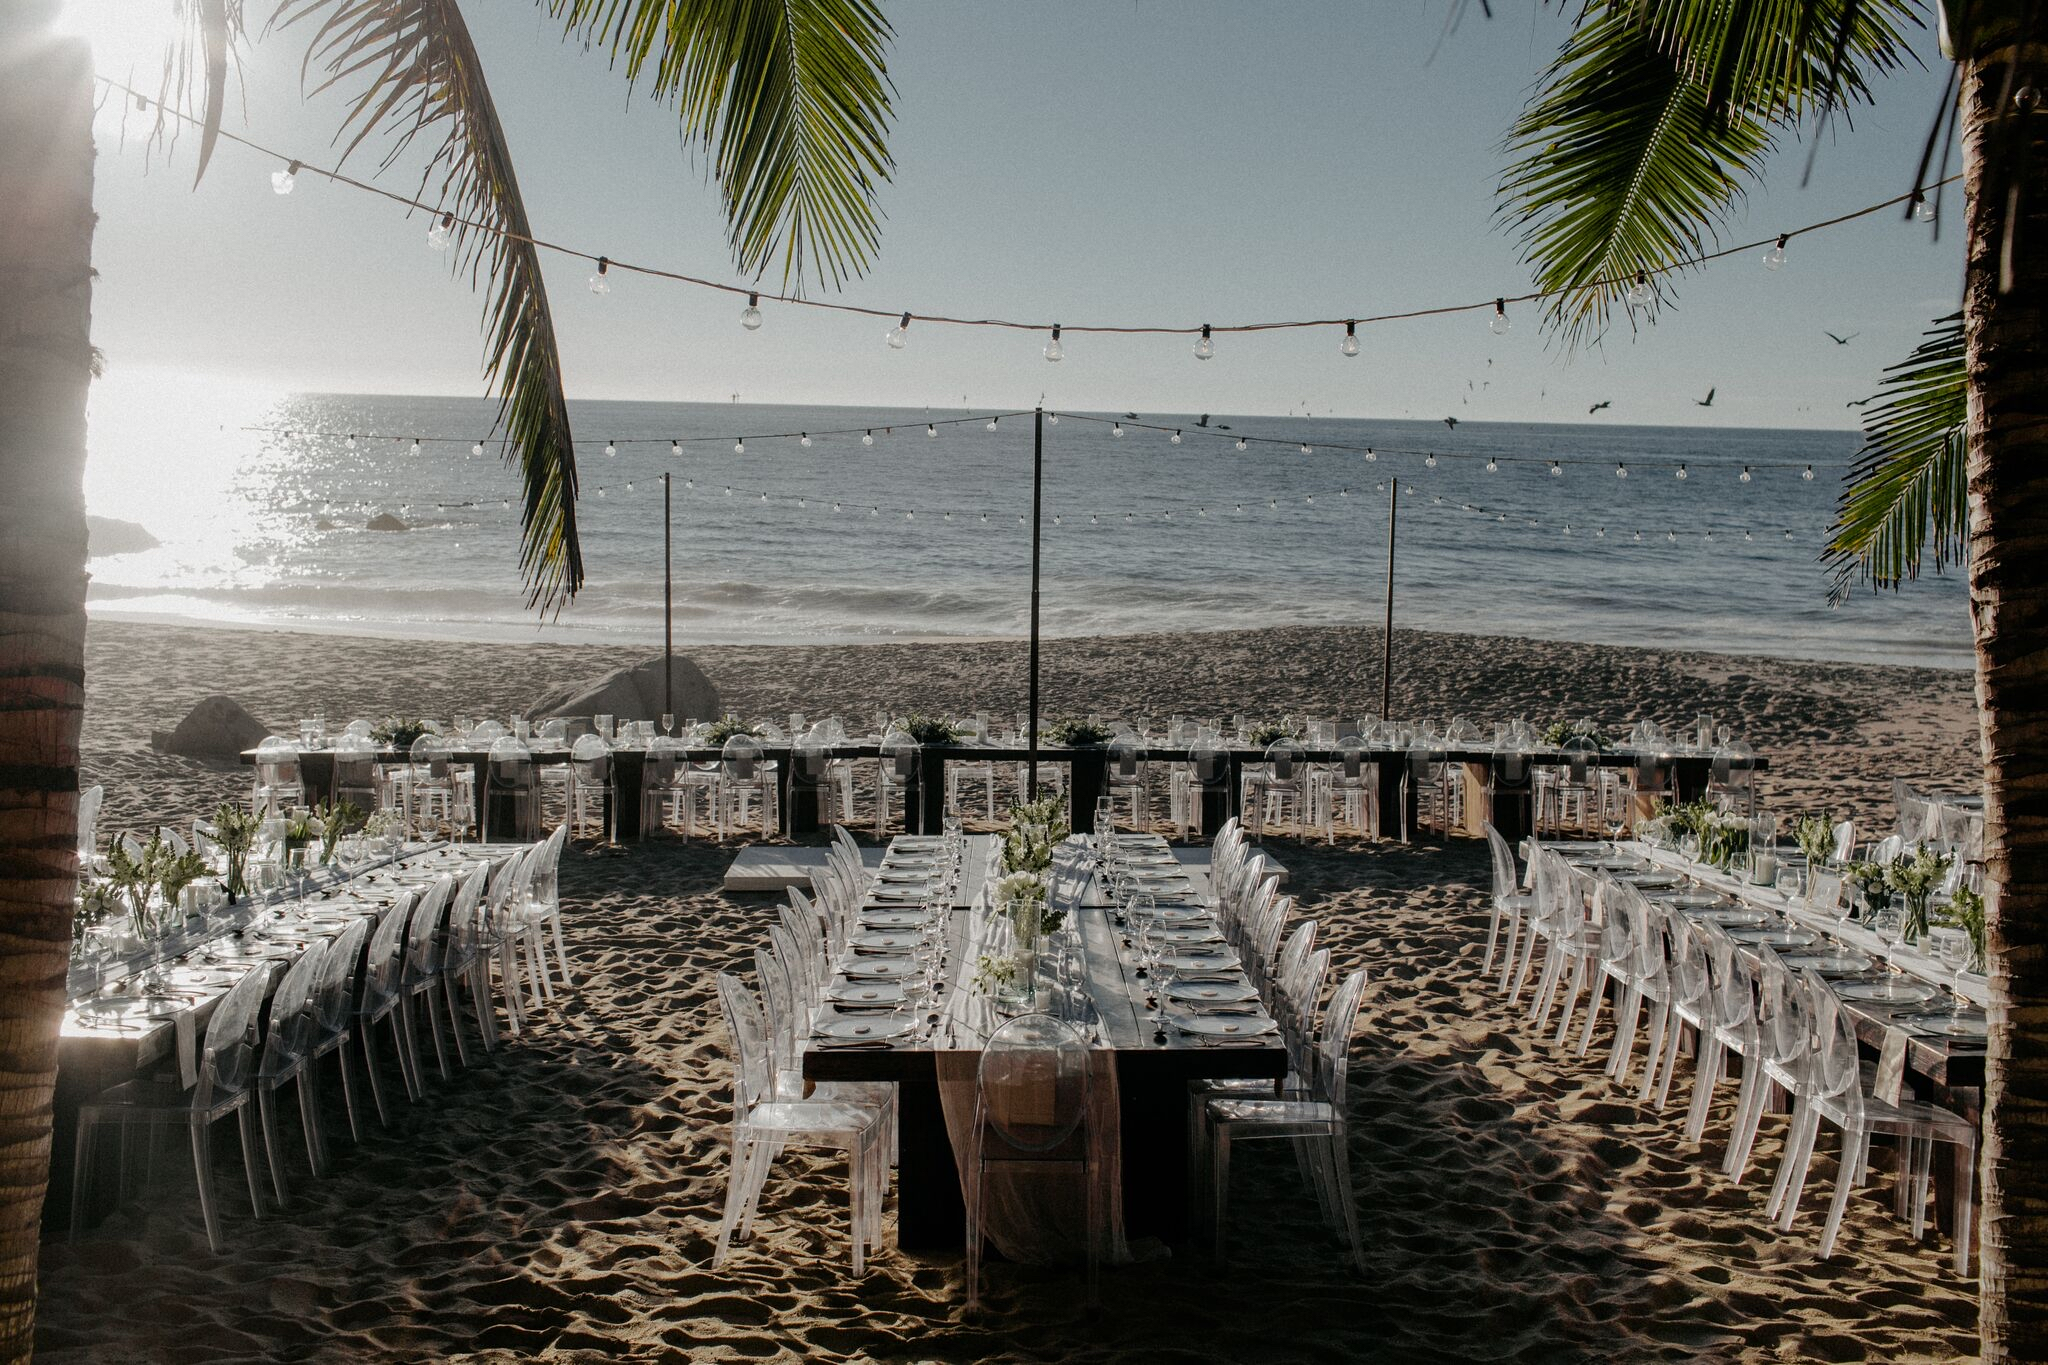 alexandra_celia_sayulita_wedding_britt_julio-1644_preview.jpg